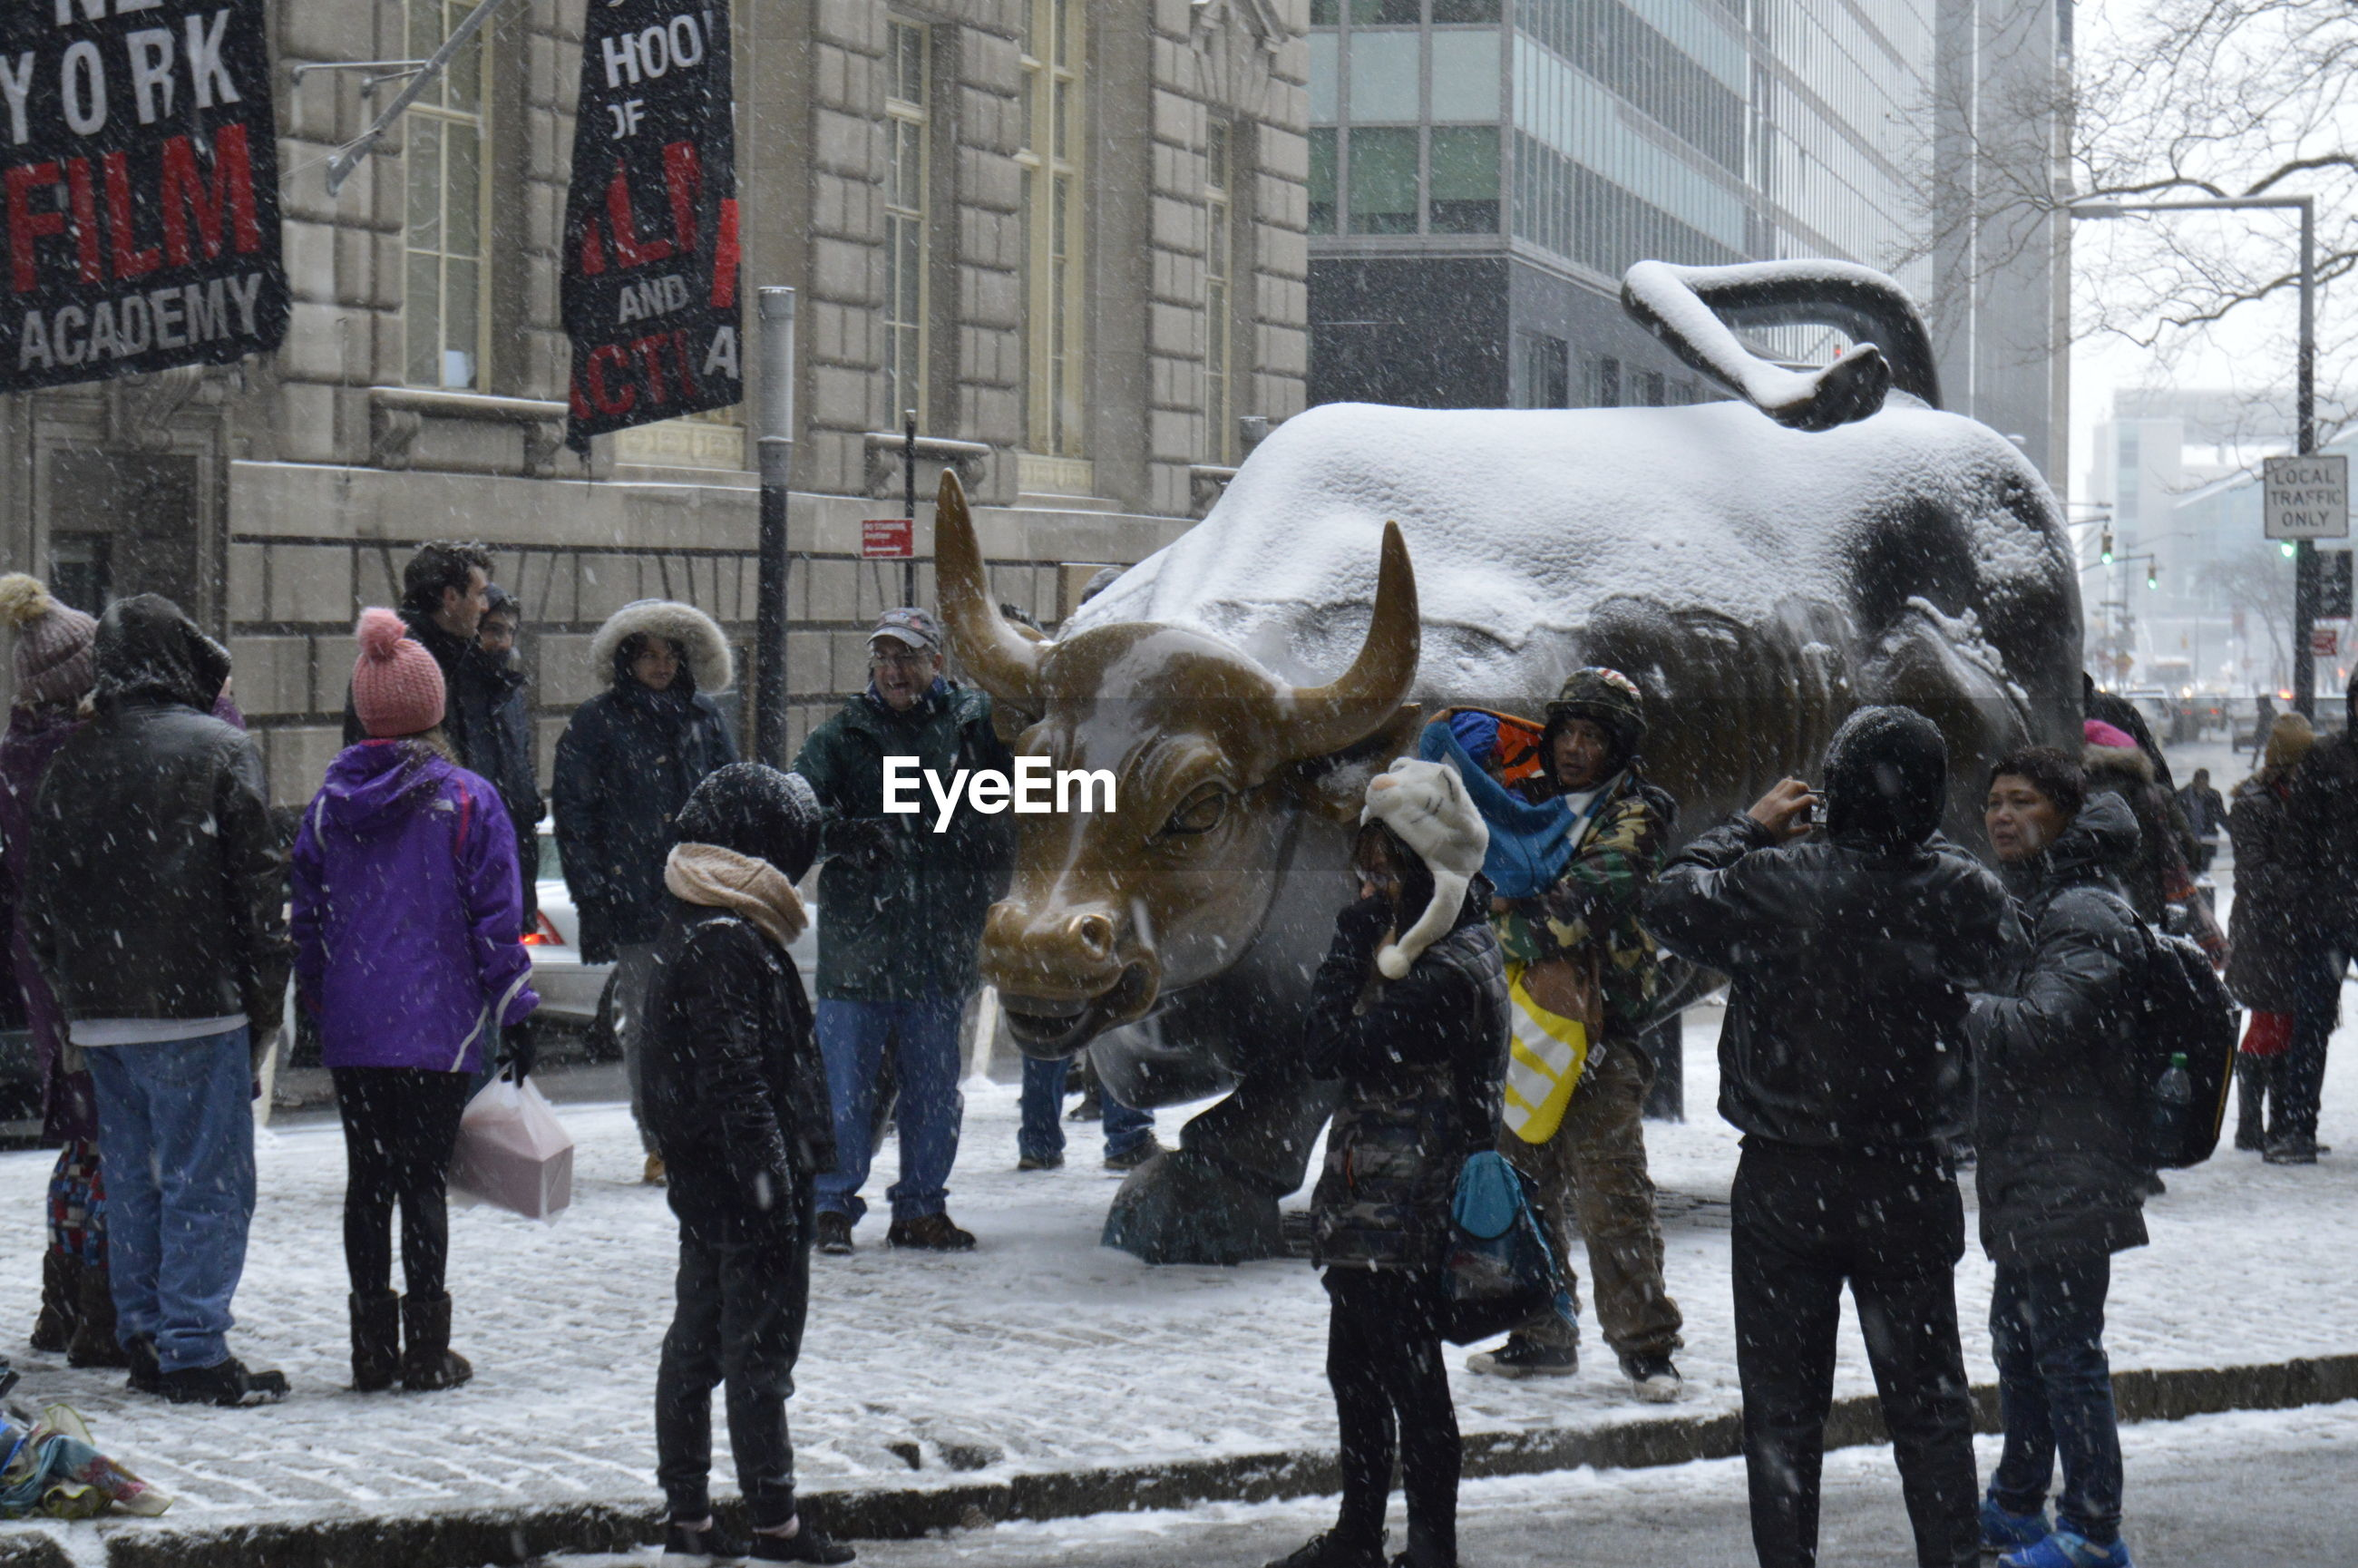 GROUP OF PEOPLE IN SNOW